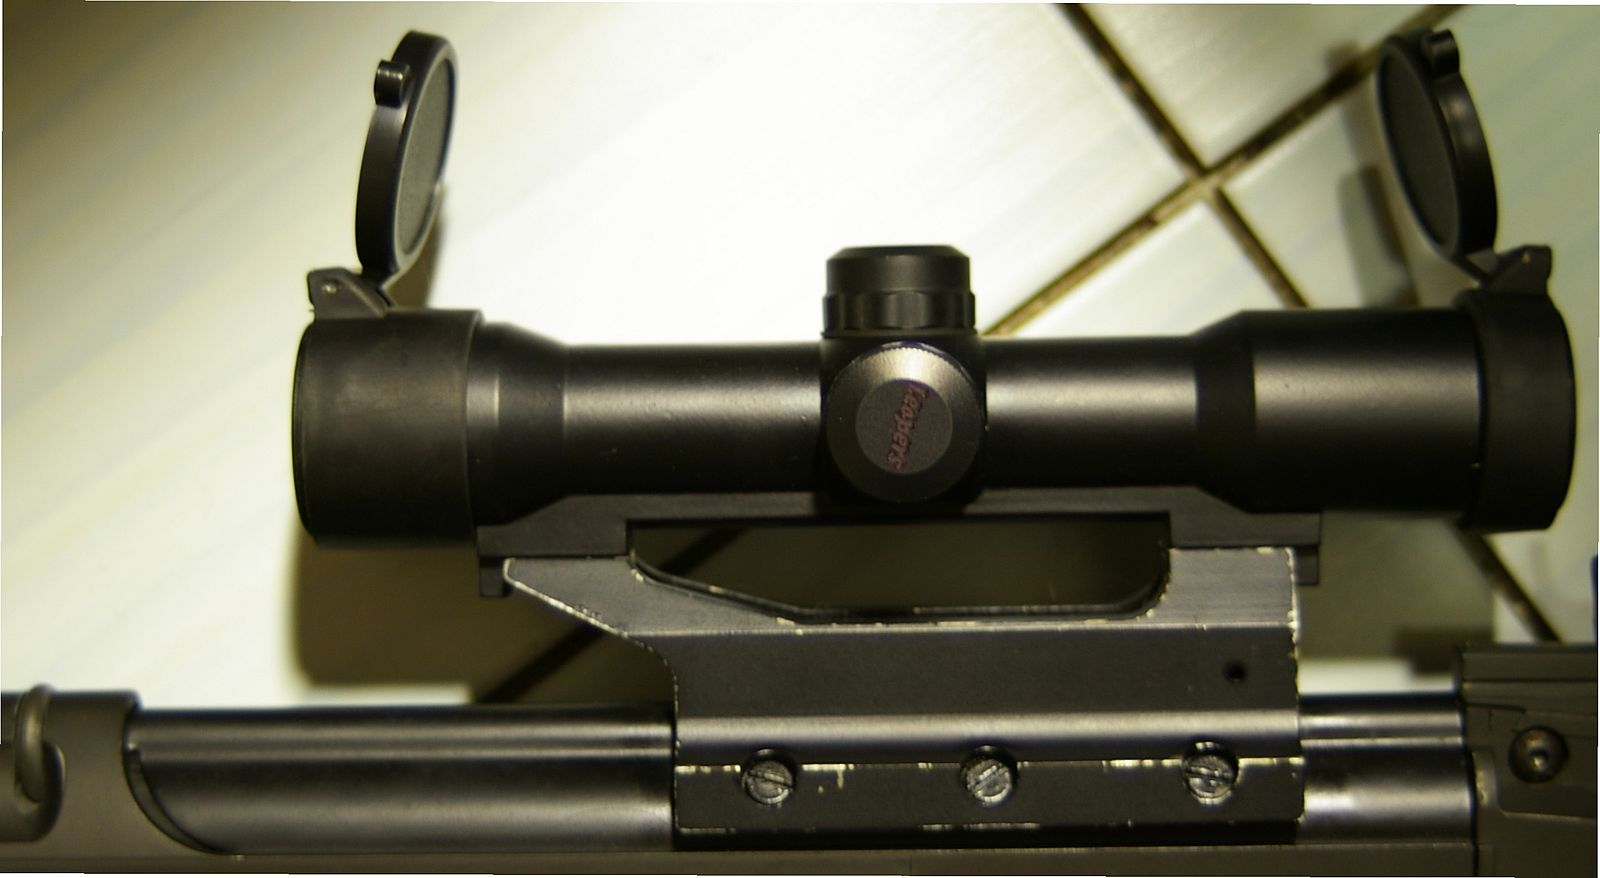 fn fal rifle stanag scope mount